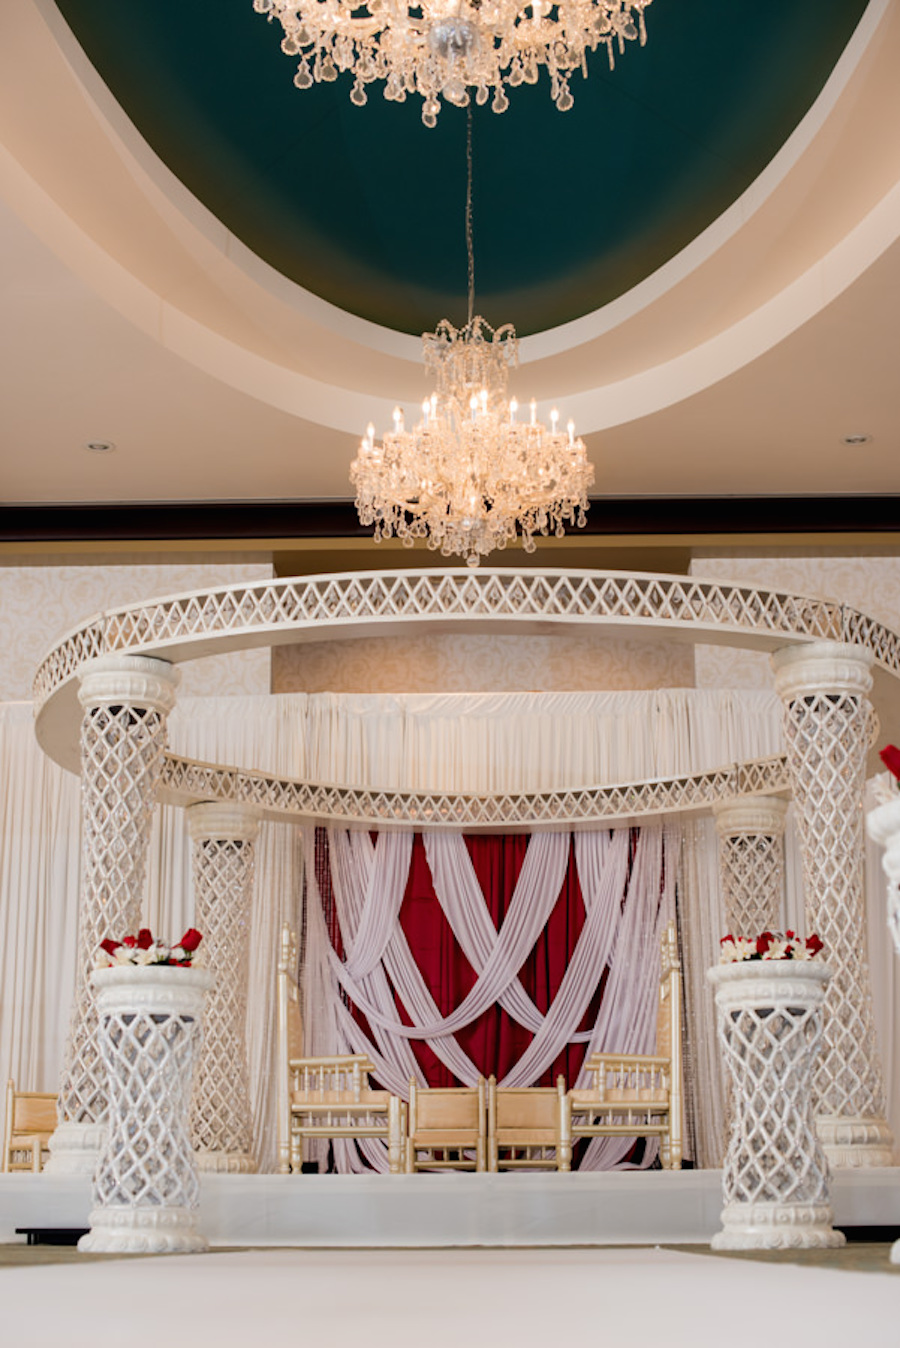 Wedding Ceremony with White and Red Altar and Floral Décor at Tampa Bay Wedding Venue, The Palmetto Club at Fishhawk Ranch